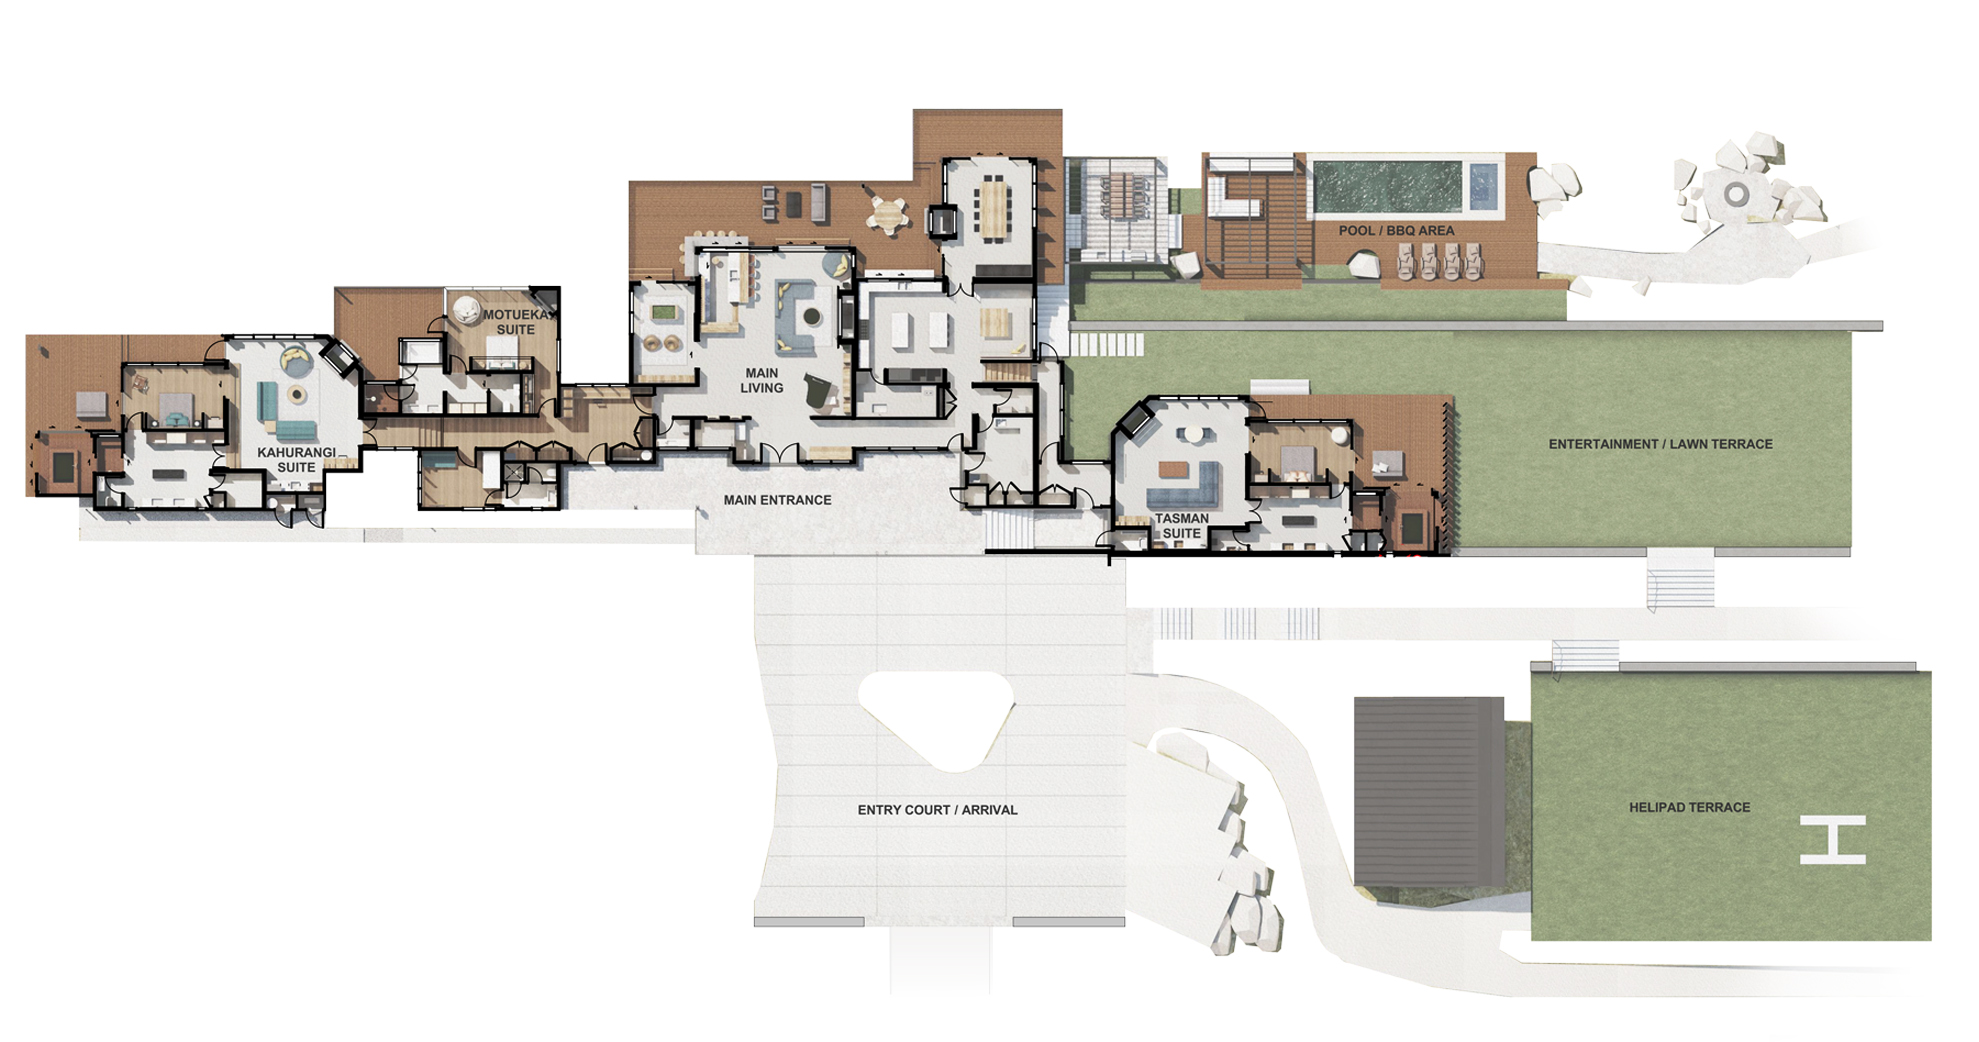 Falcon Brae_IMAGE 02 - overall plan.jpg